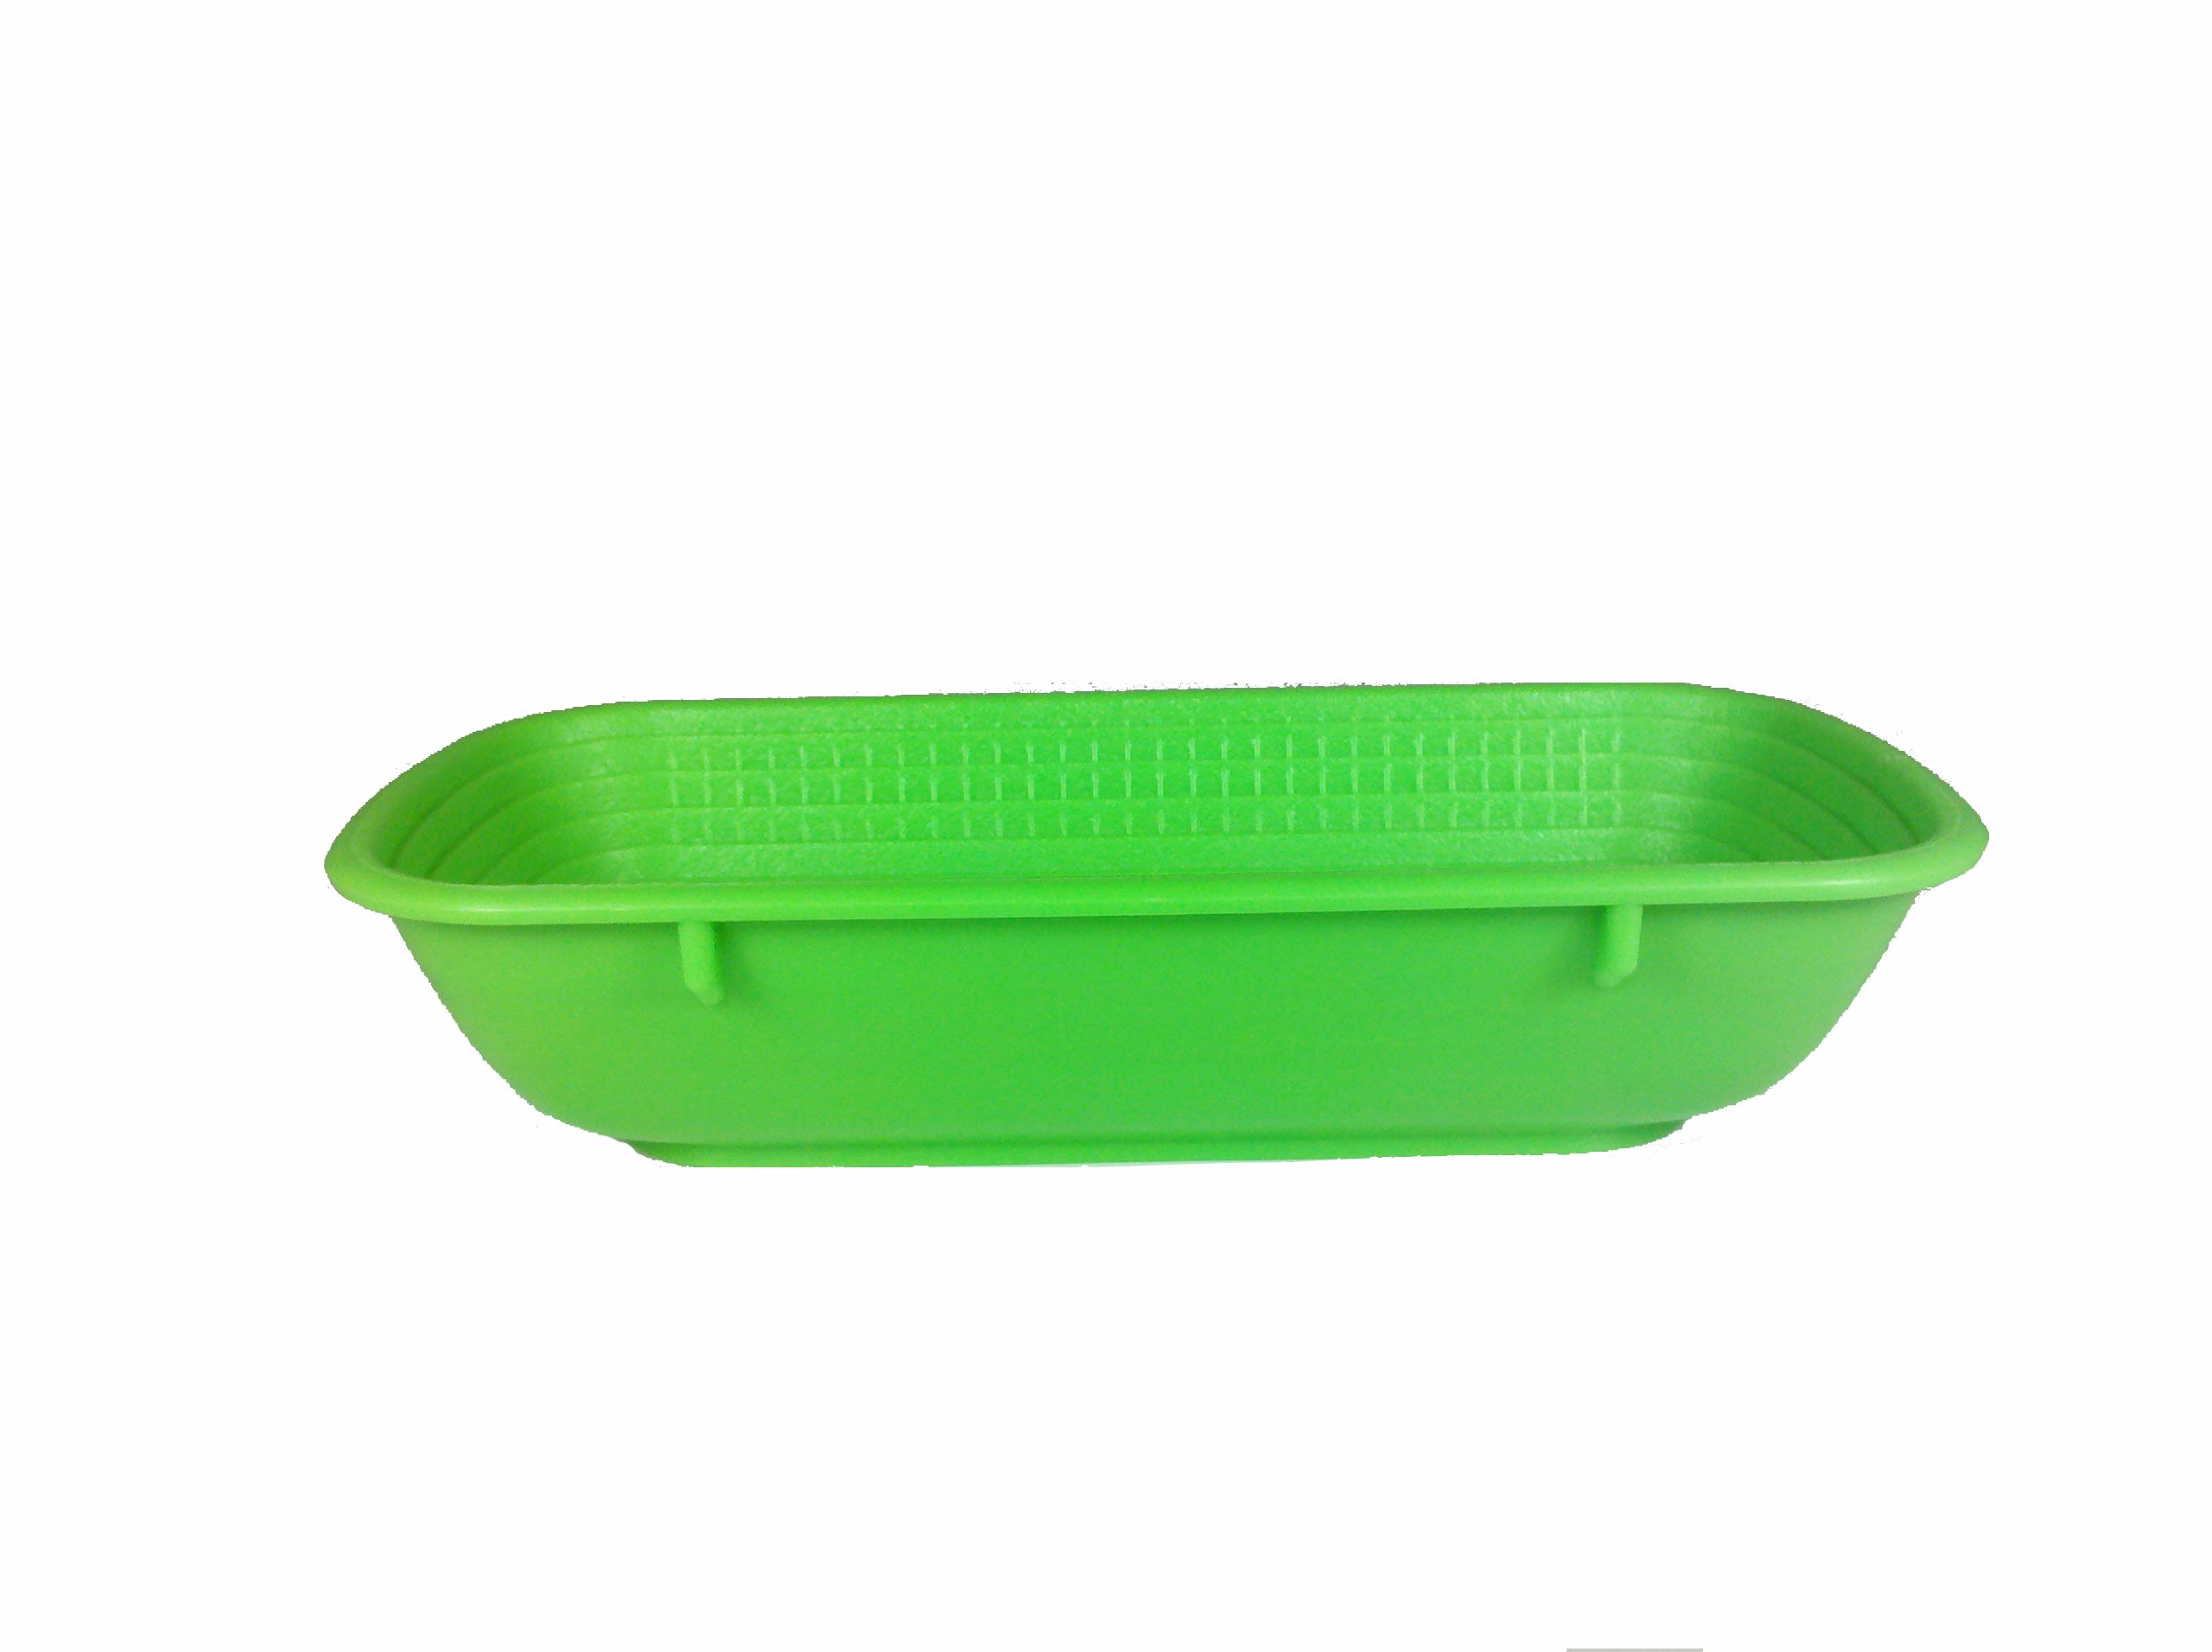 Paderno World Cuisine 10-5/8-Inch by 4-3/4-Inch Rectangular Green Proofing Basket (.5 Kilo)